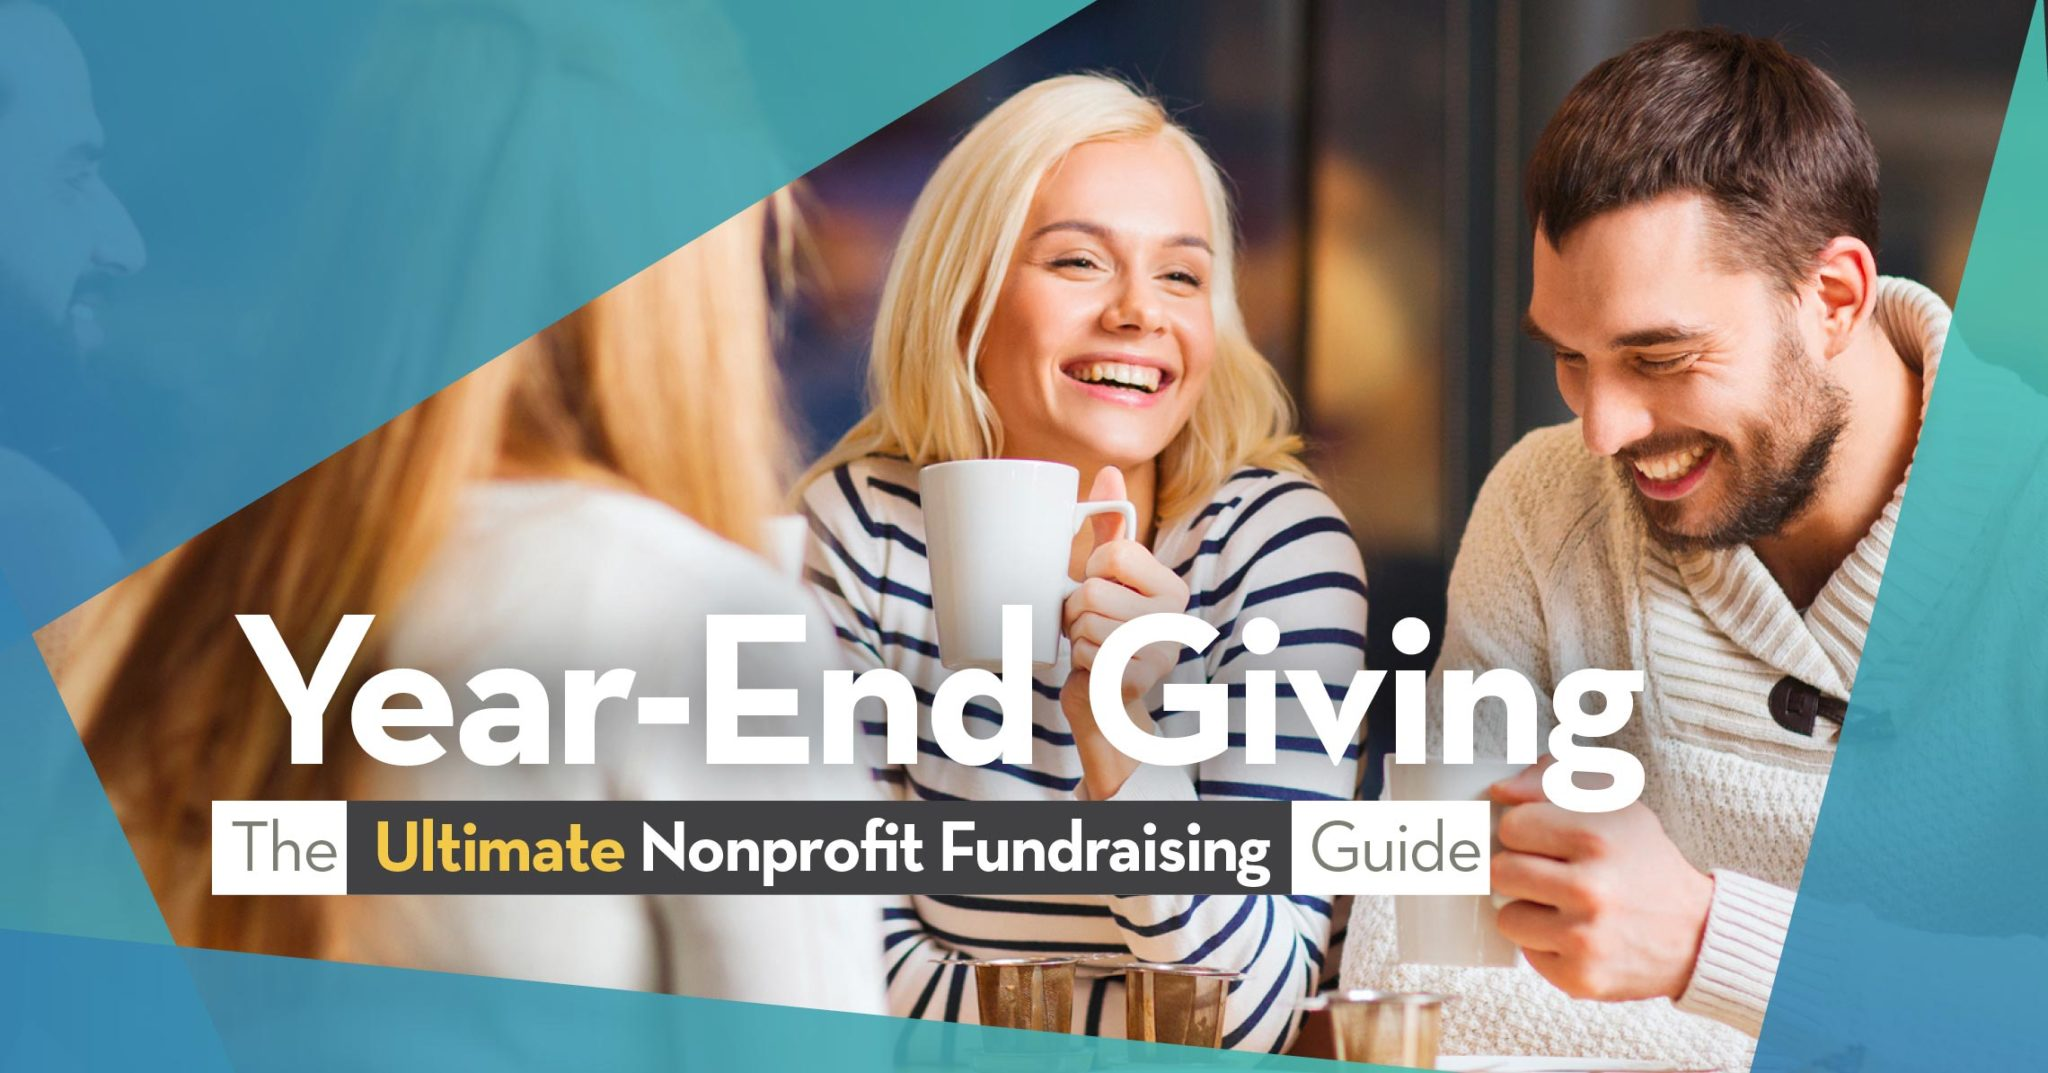 Year-End Giving | The Ultimate Nonprofit Fundraising Guide